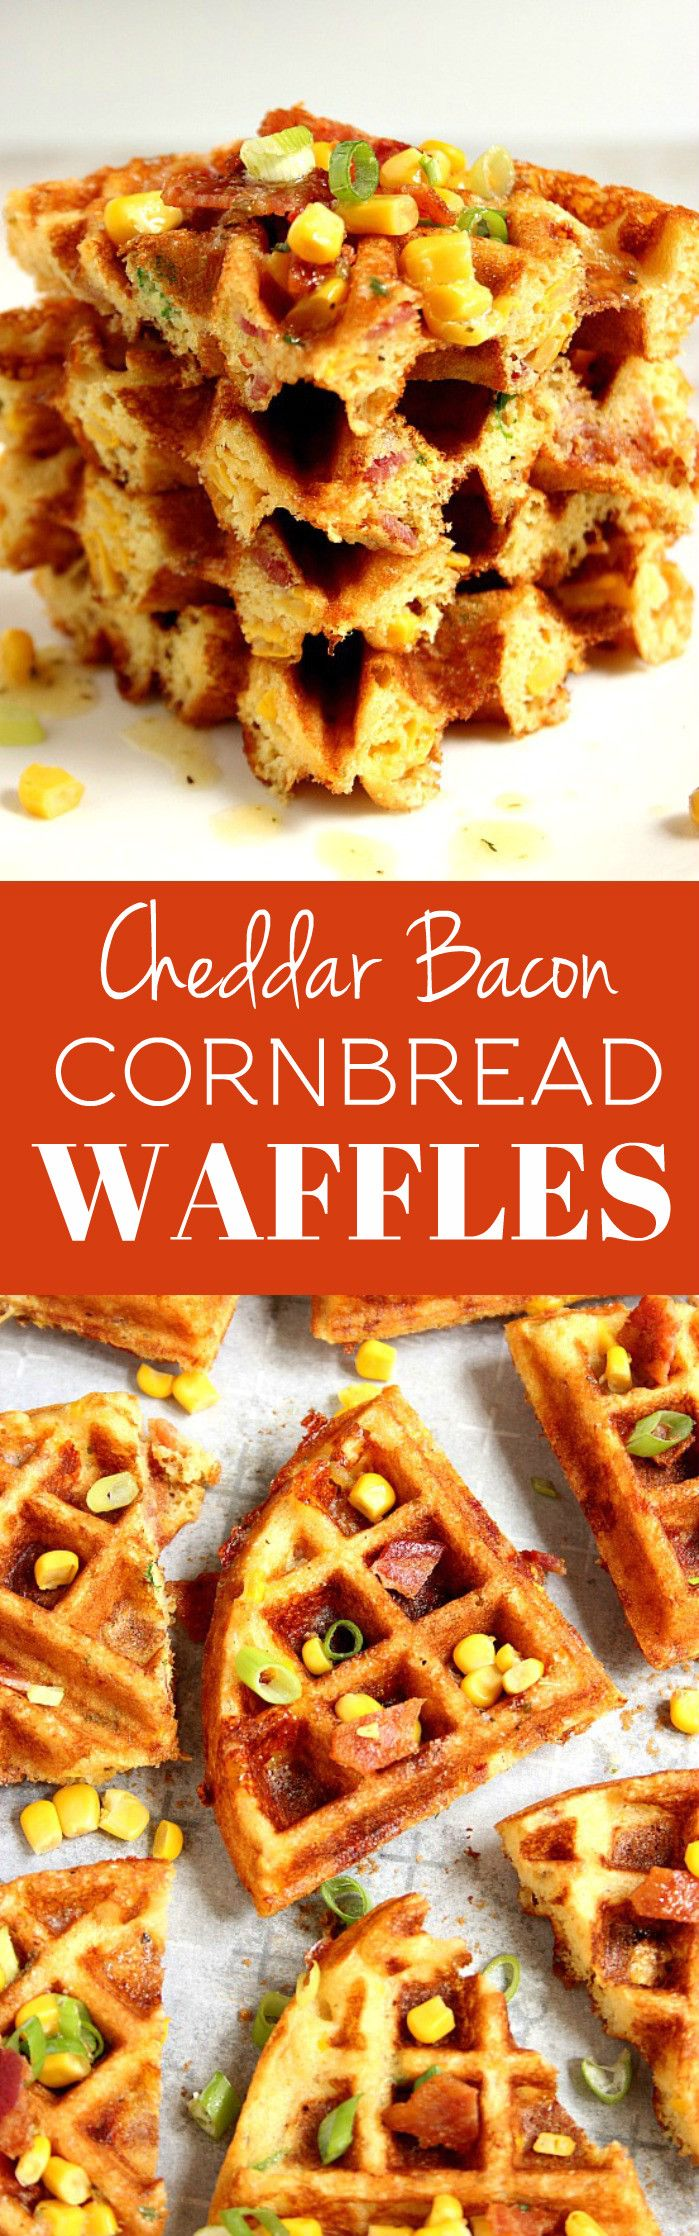 Waffles Recipe - savory take on waffles, filled with crispy bacon ...